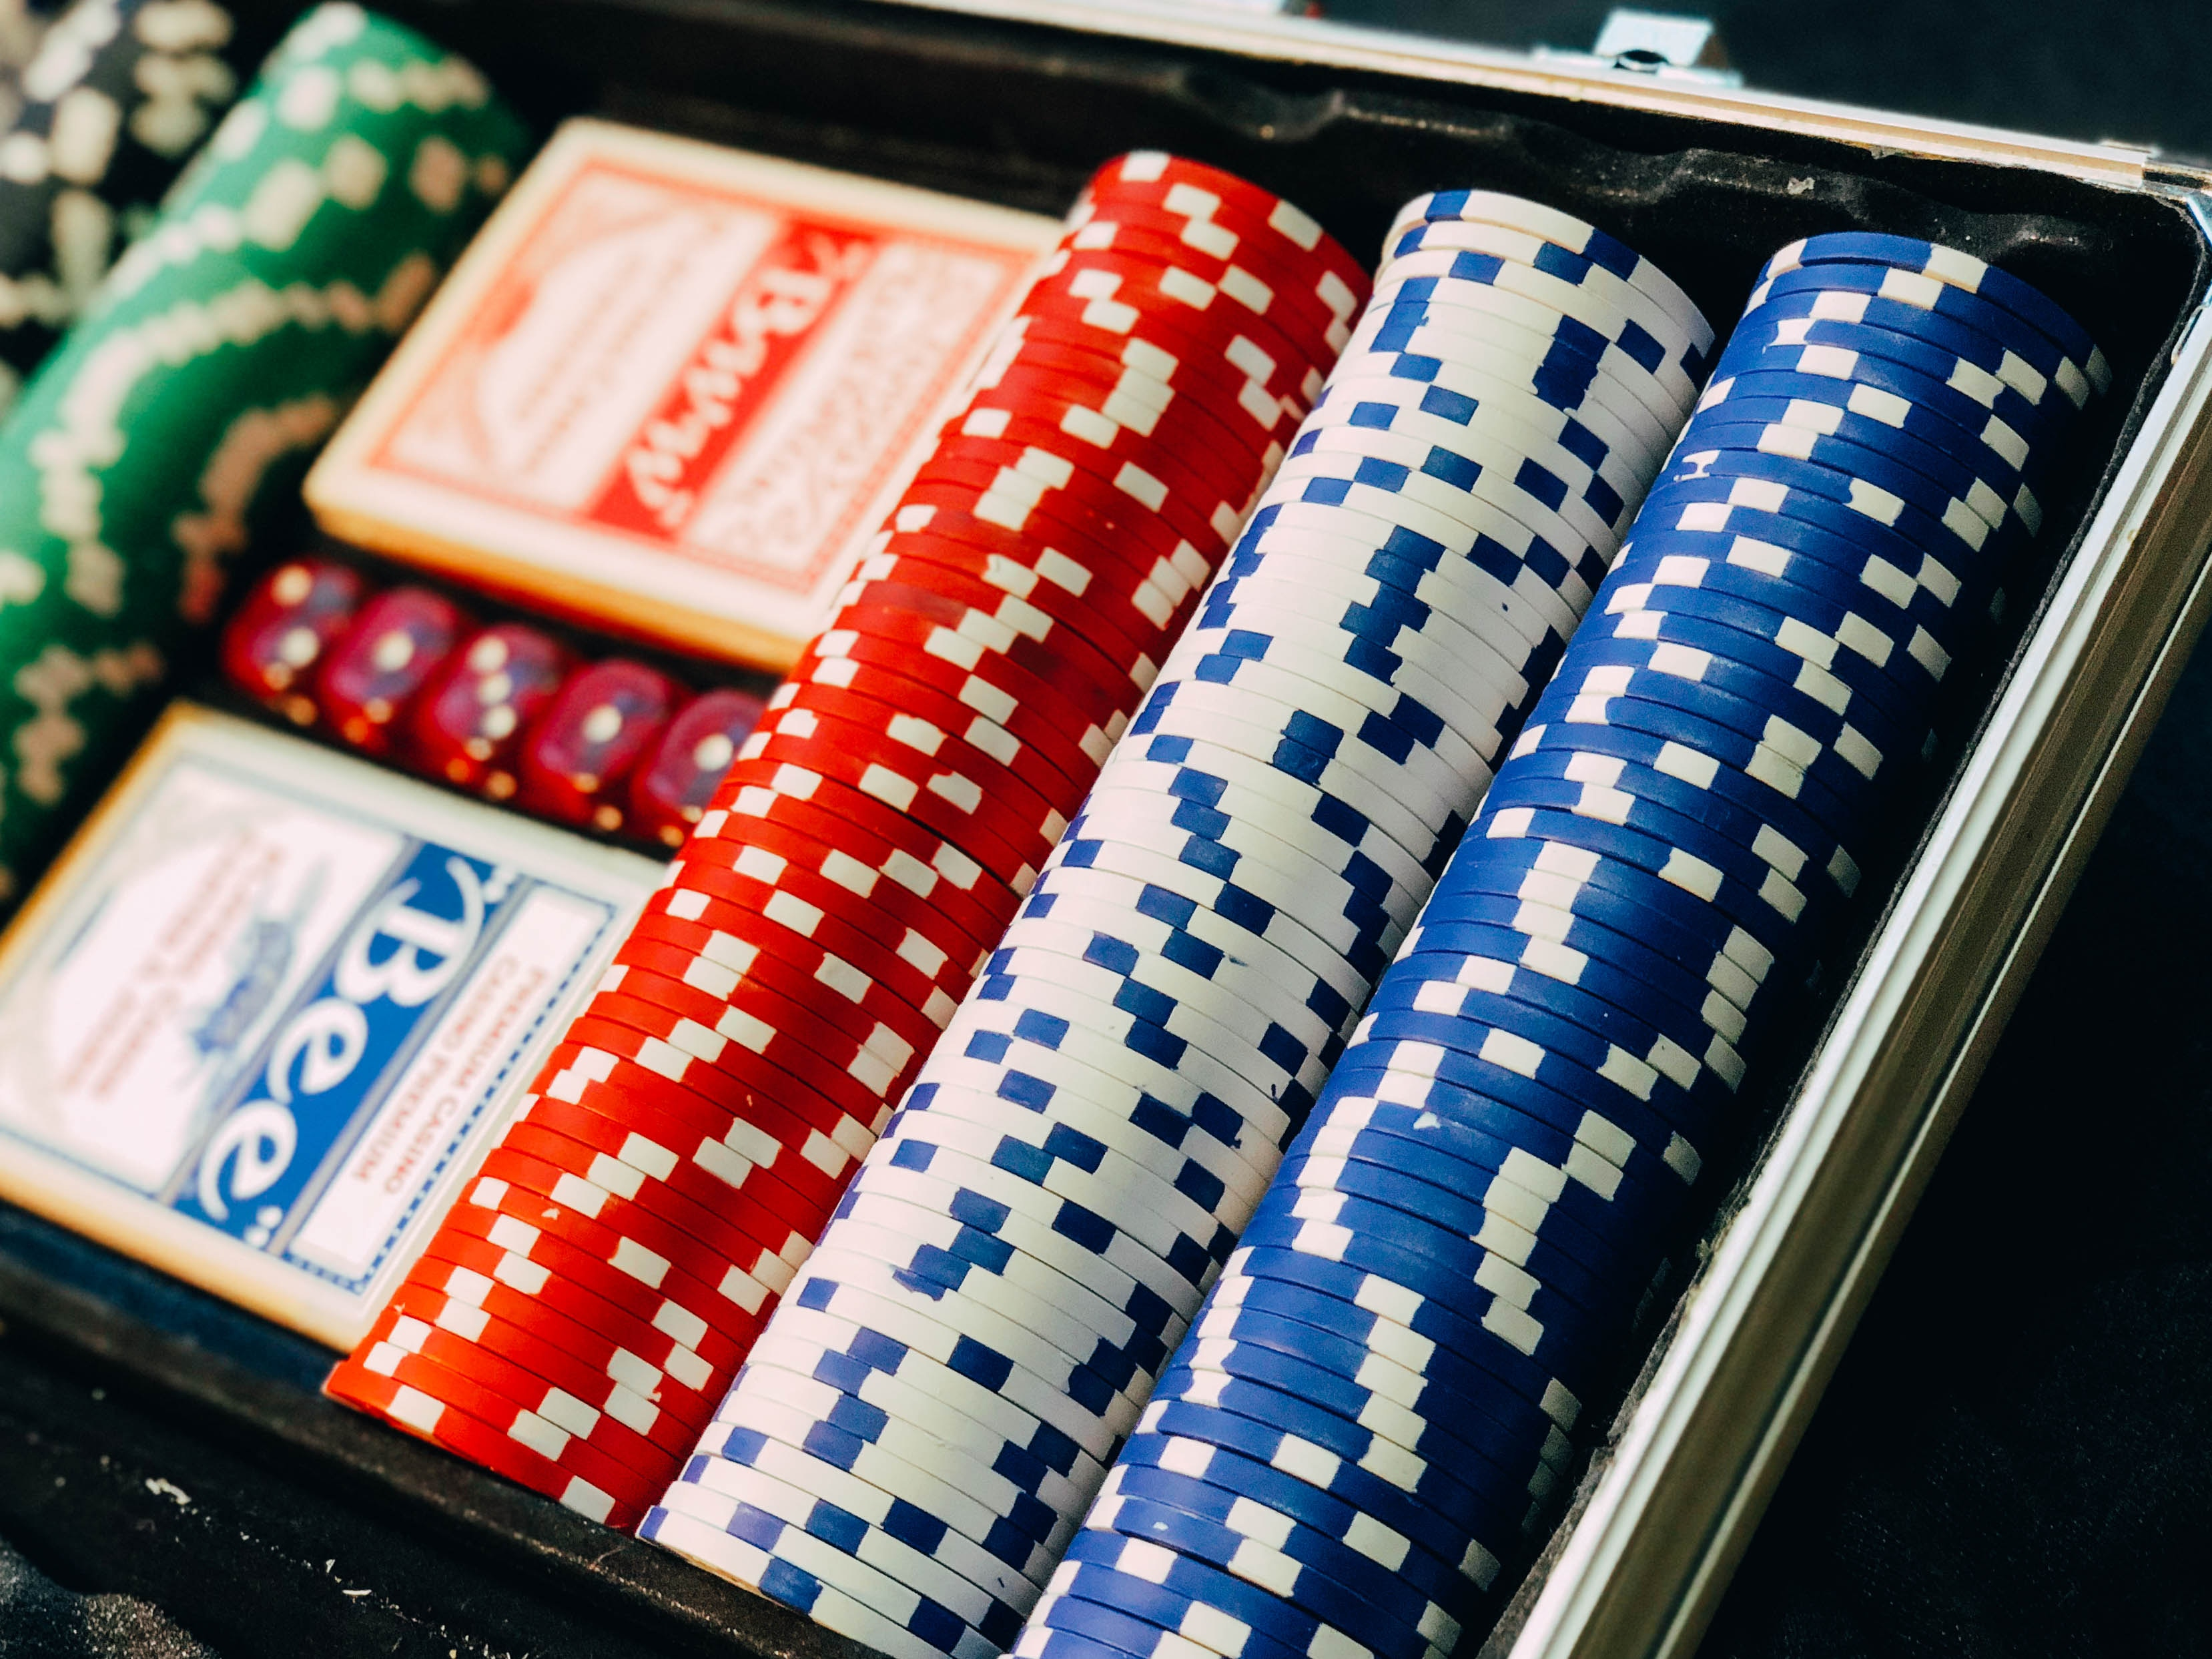 Win Big By Playing At Casino Online With Live Dealer Games